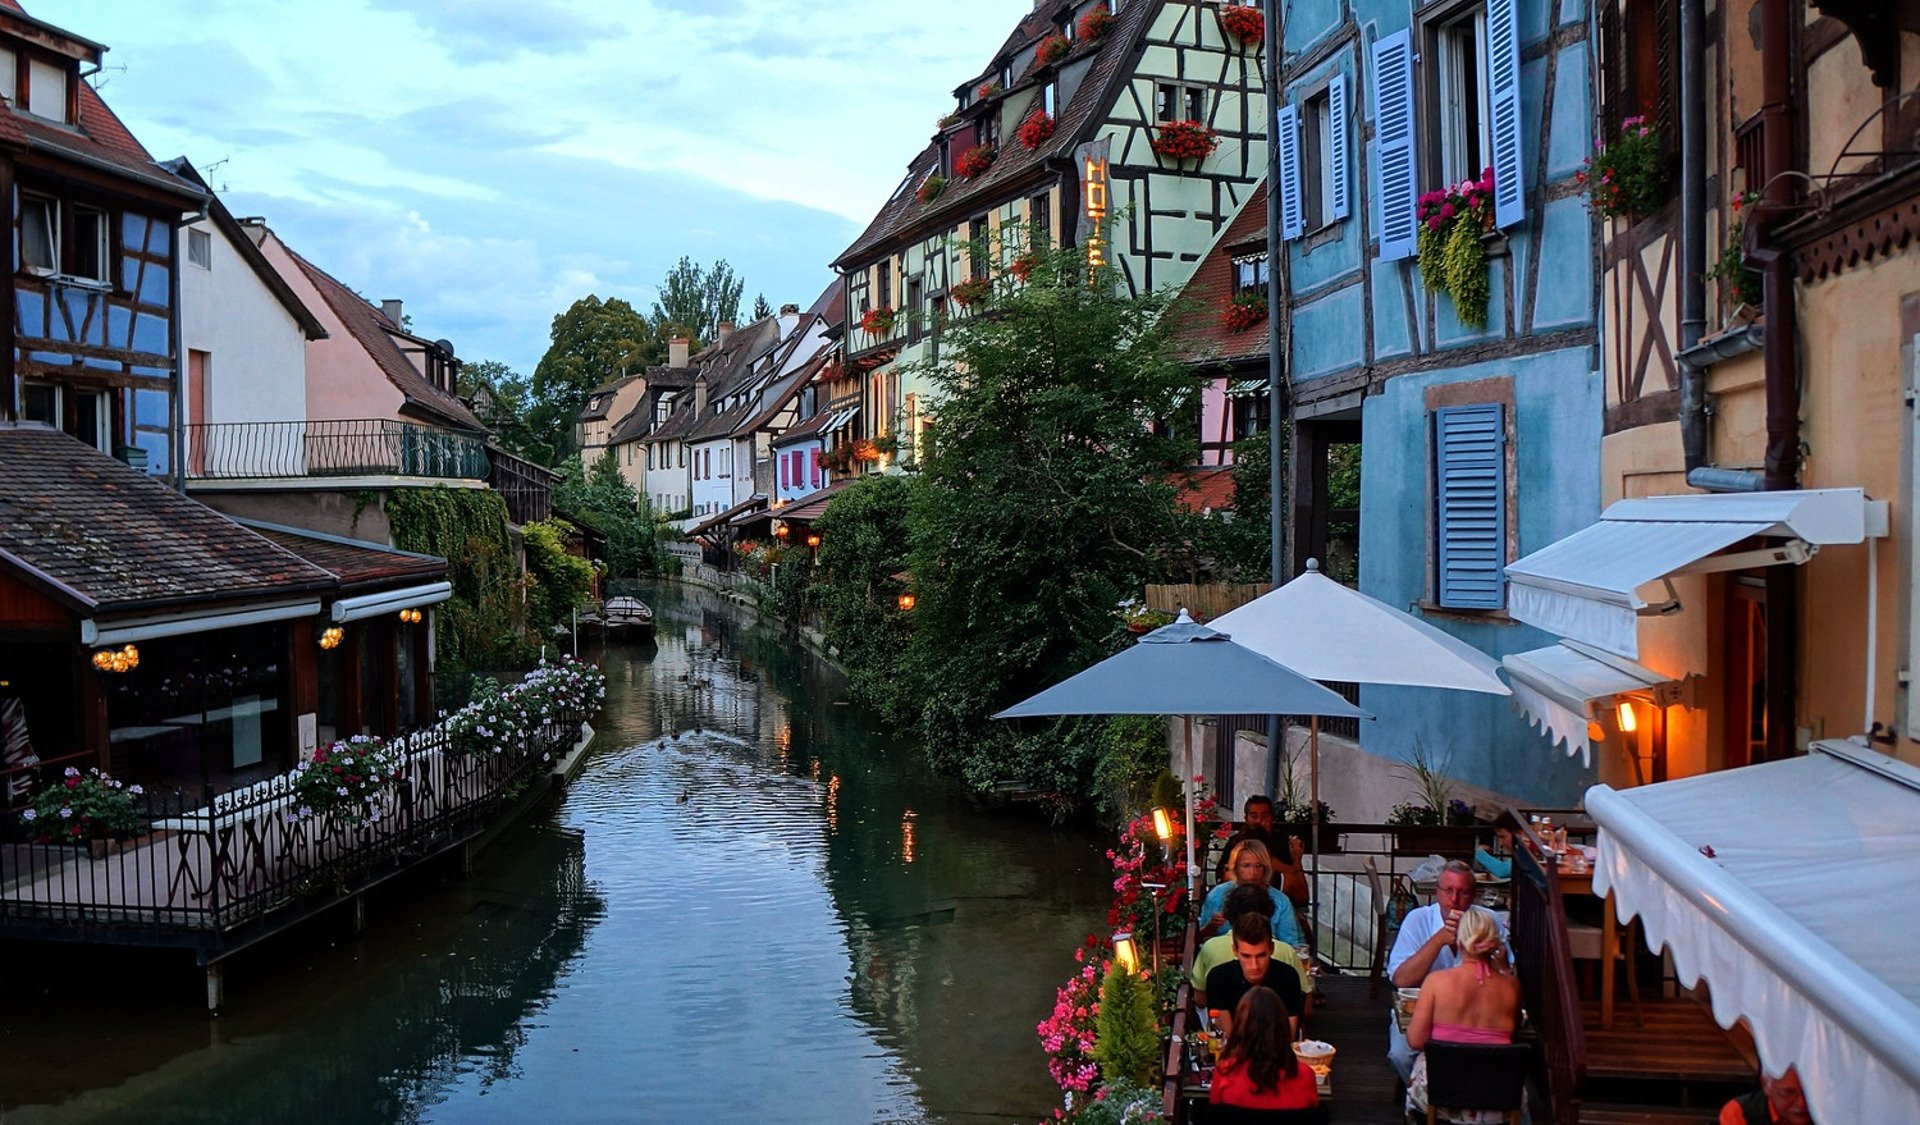 private tour-old-town-Colmar-Alsace-France